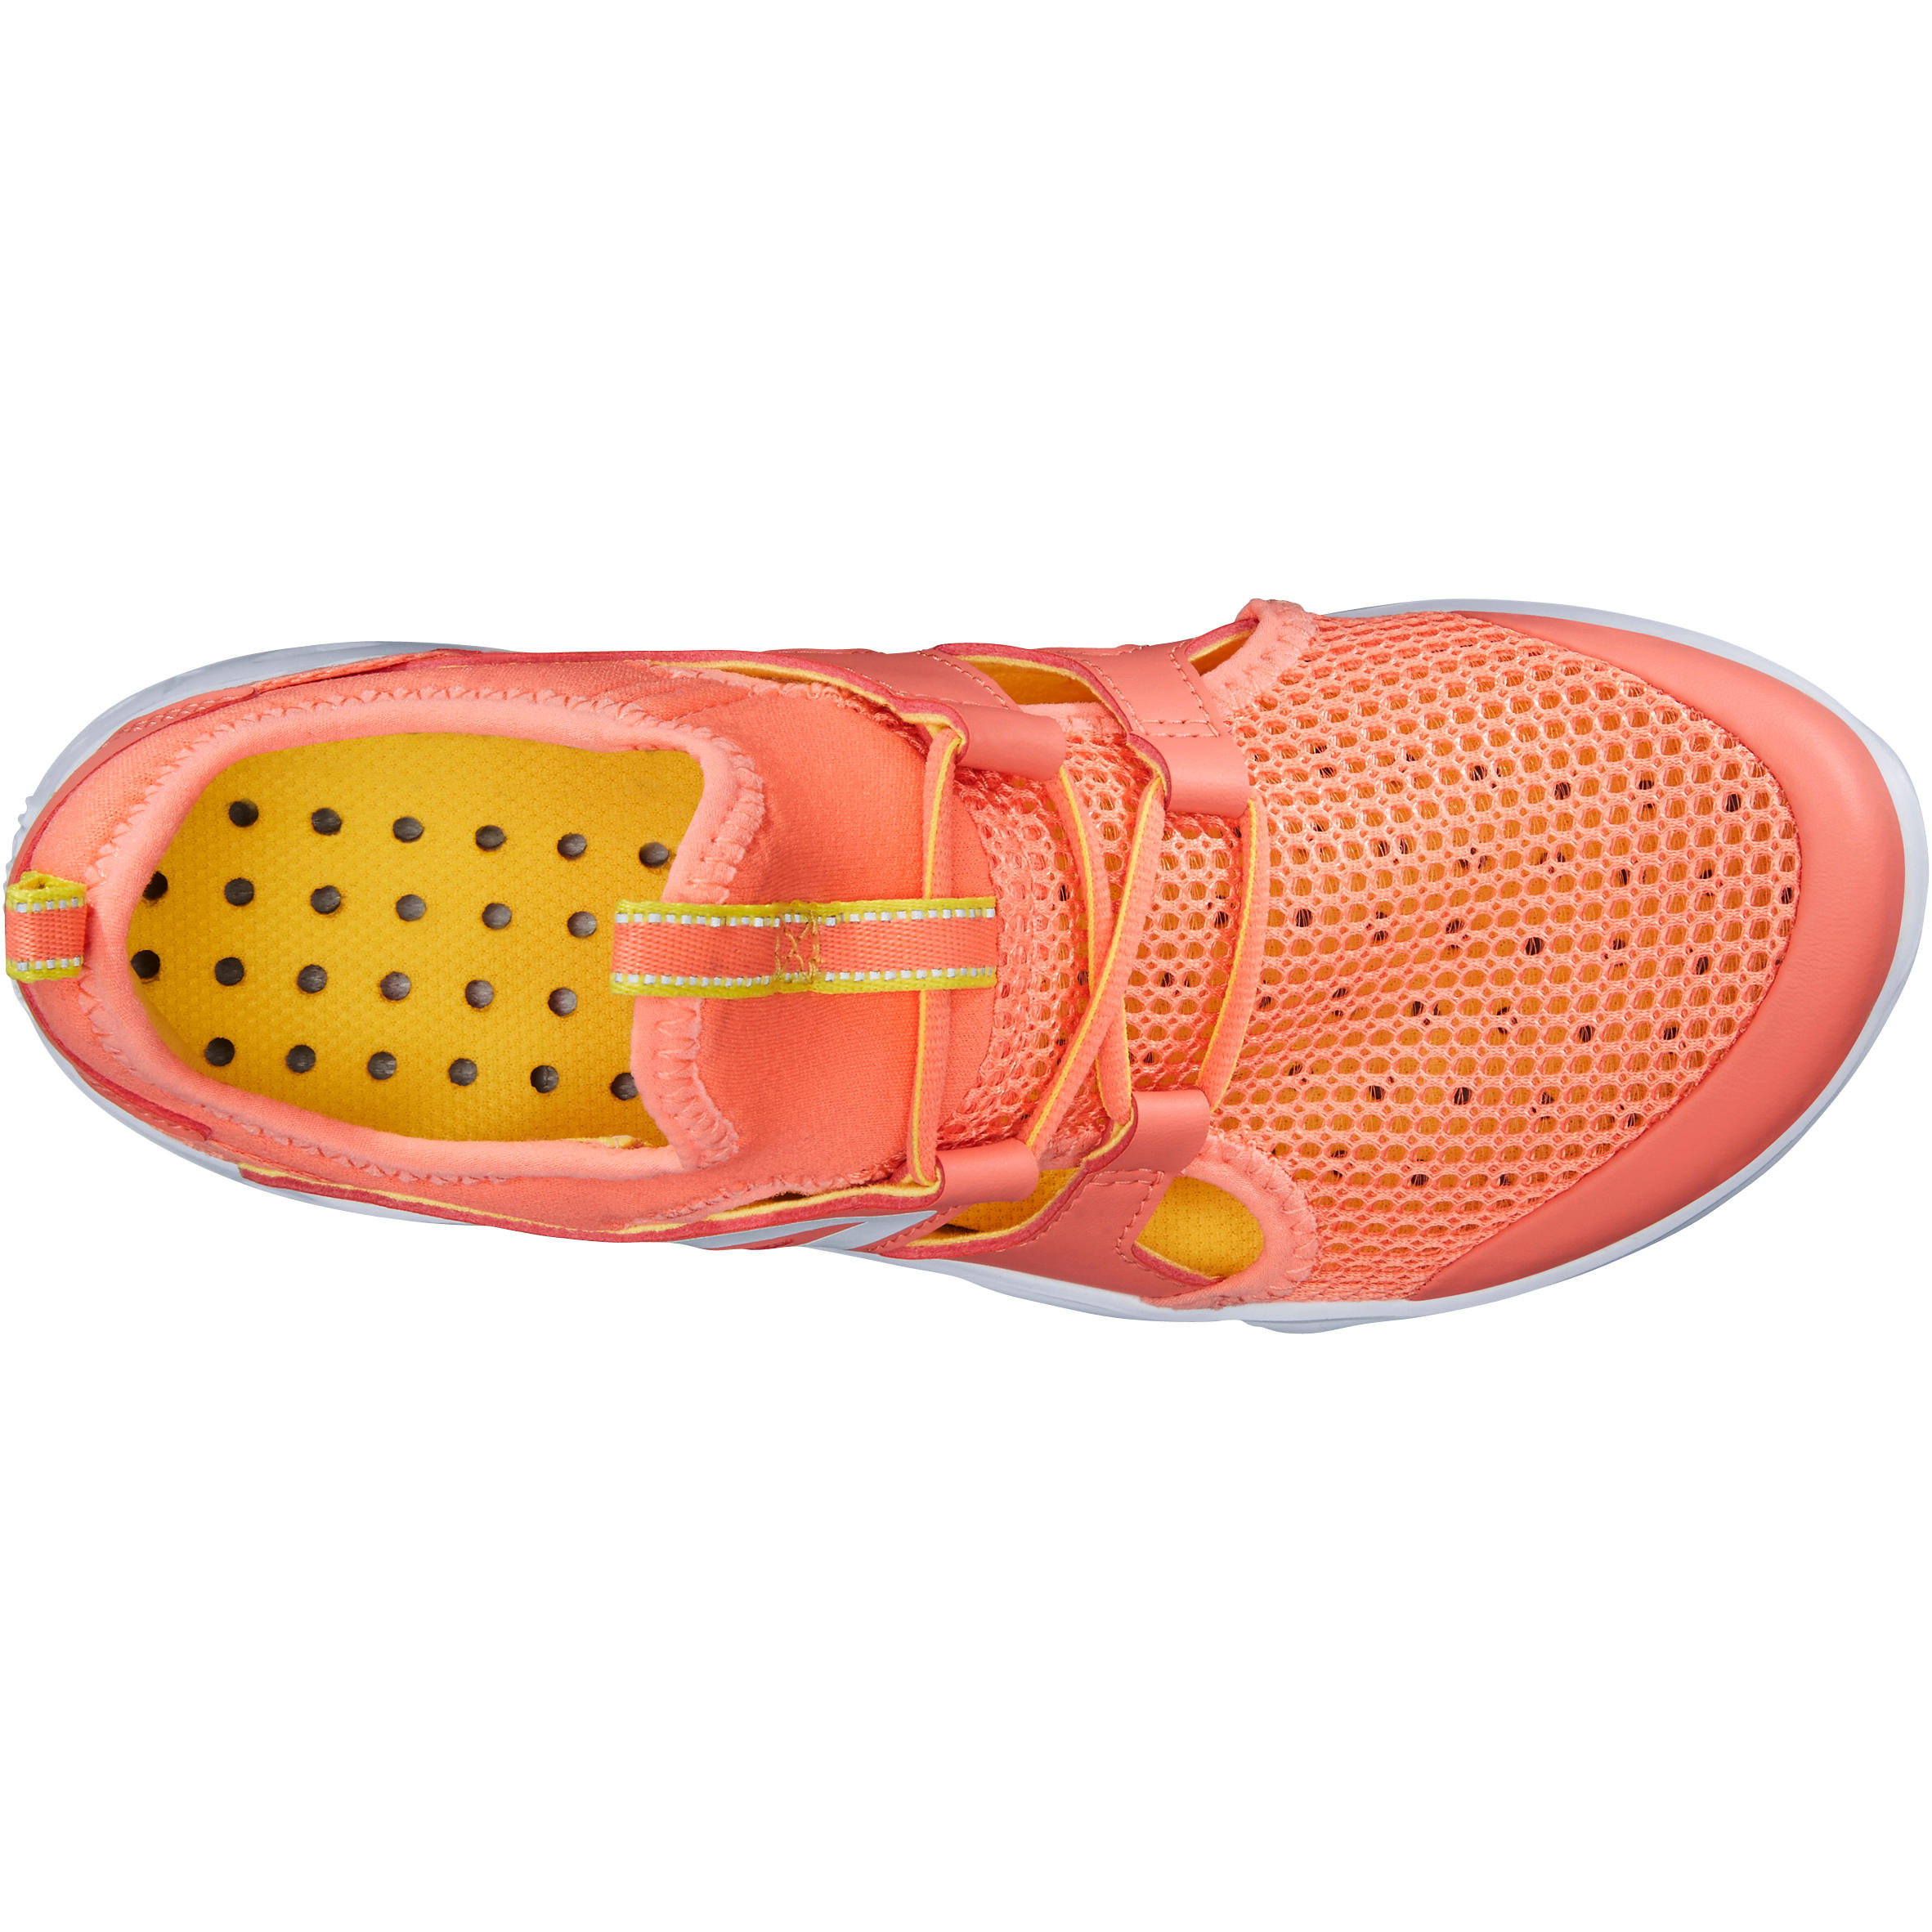 Walking shoes for kids PW 500 fresh - Coral